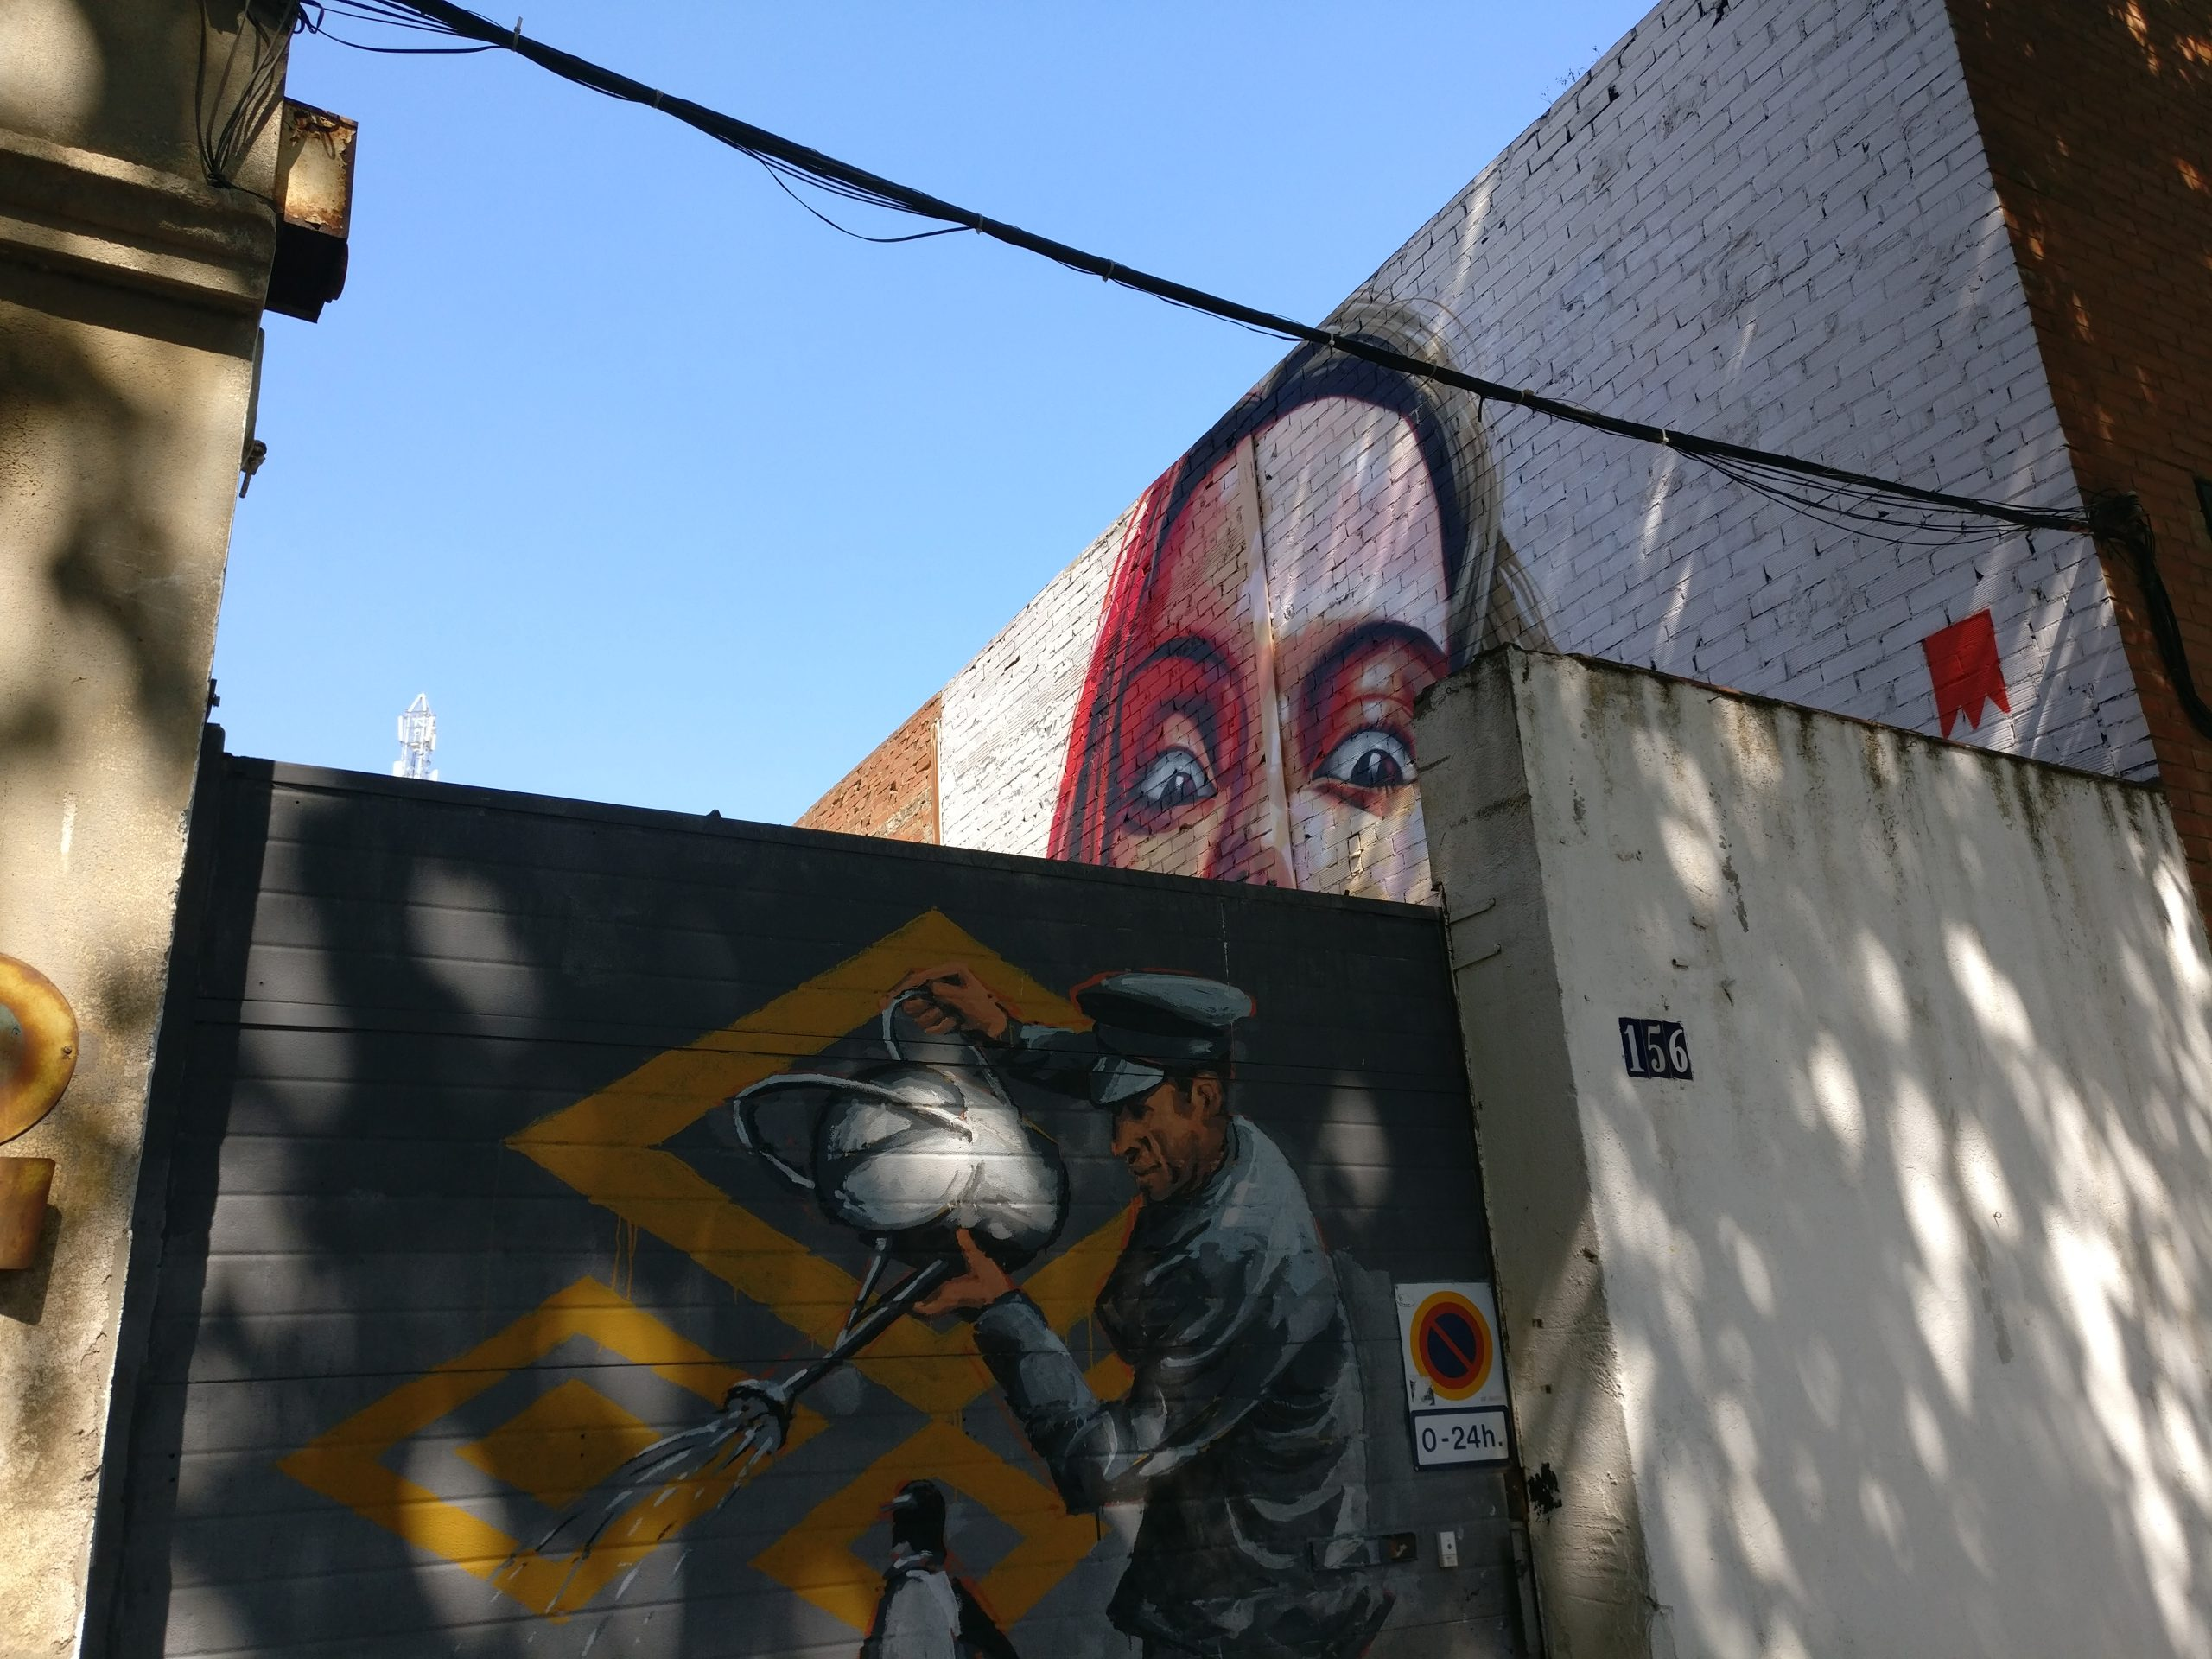 e3be6c497ebcd Barcelona is one of the best places in Spain to see street art. It's a city  with a vibrant artistic culture and everywhere you go, art jumps out at you  and ...